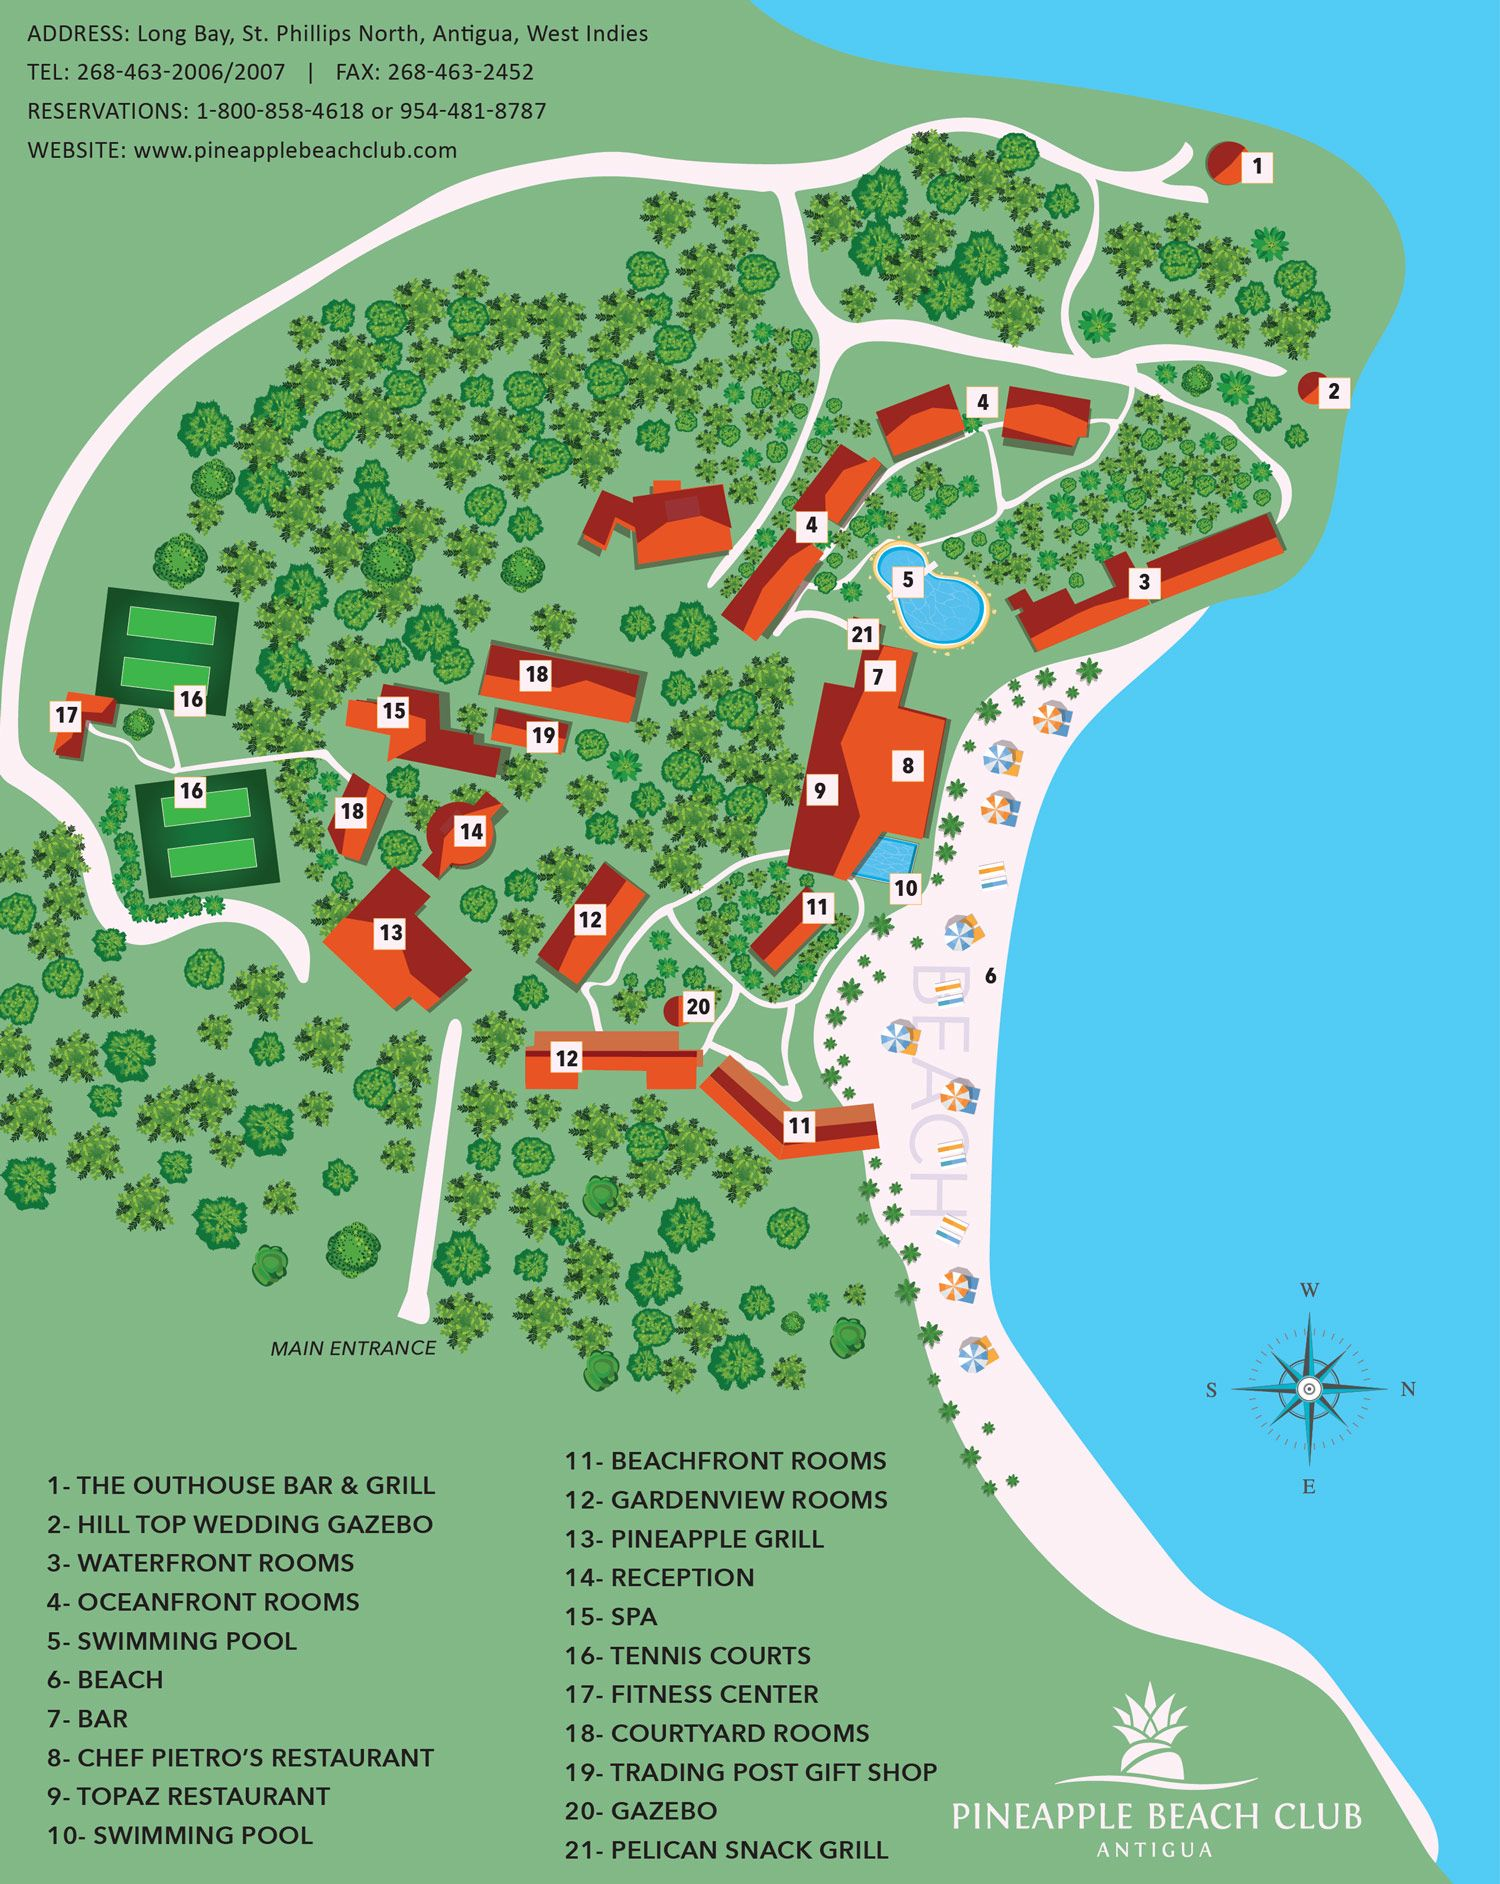 Explore Everything Pinele Beach Club Has To Offer With This Easy Read Map